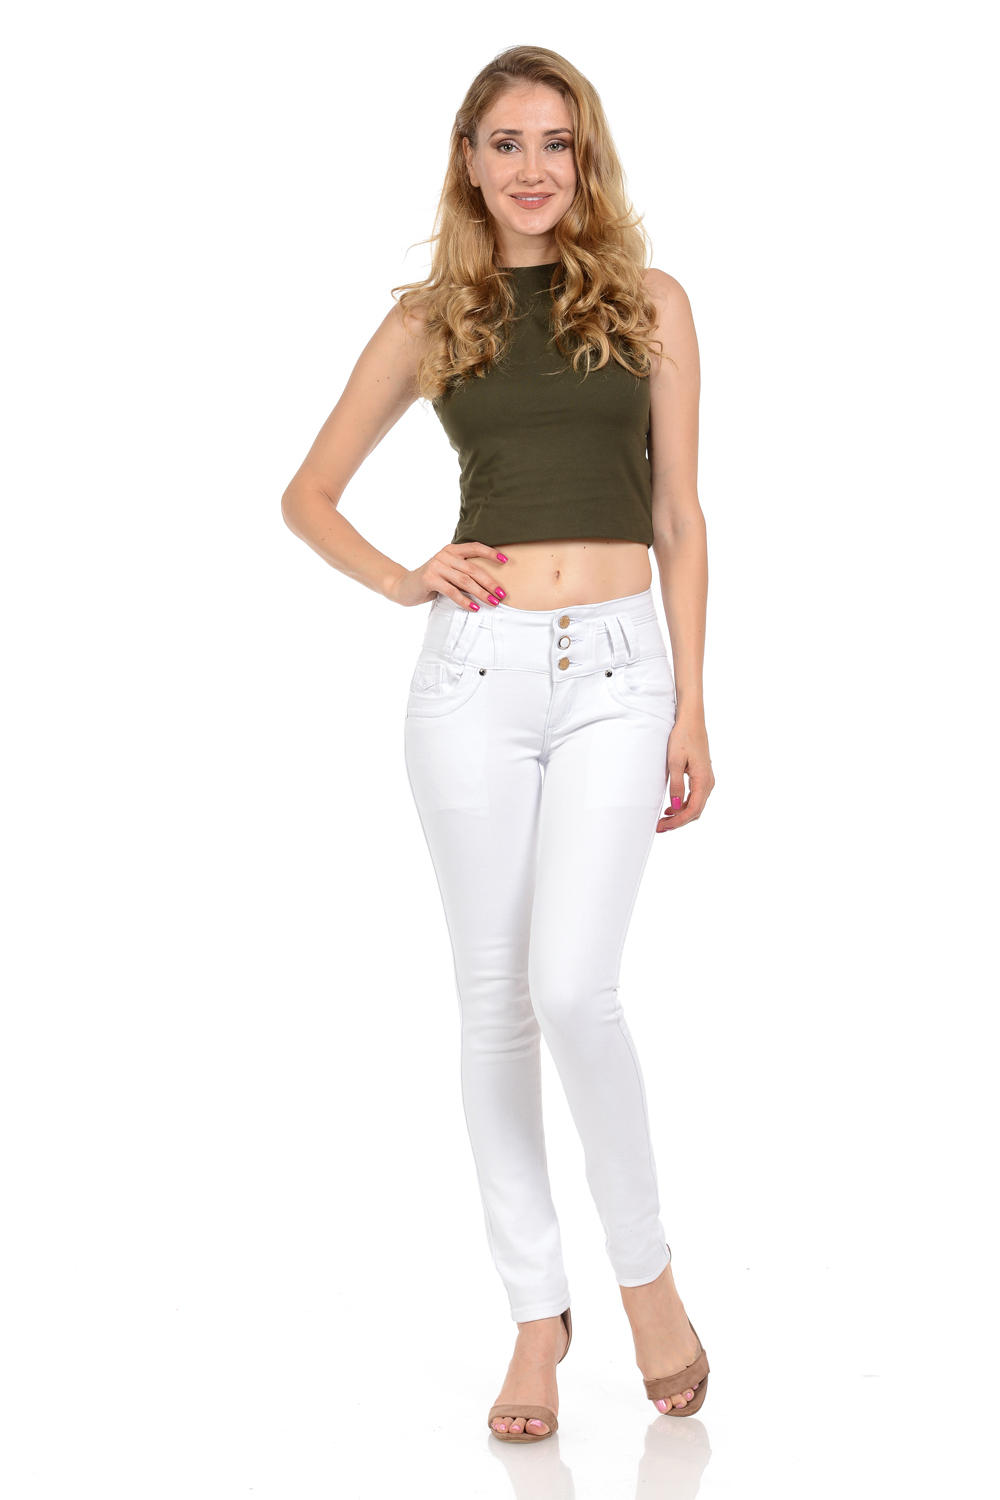 M.Michel Women's Jeans Colombian Design, Butt Lift, Levanta Cola, Push Up, Skinny · Style A10003